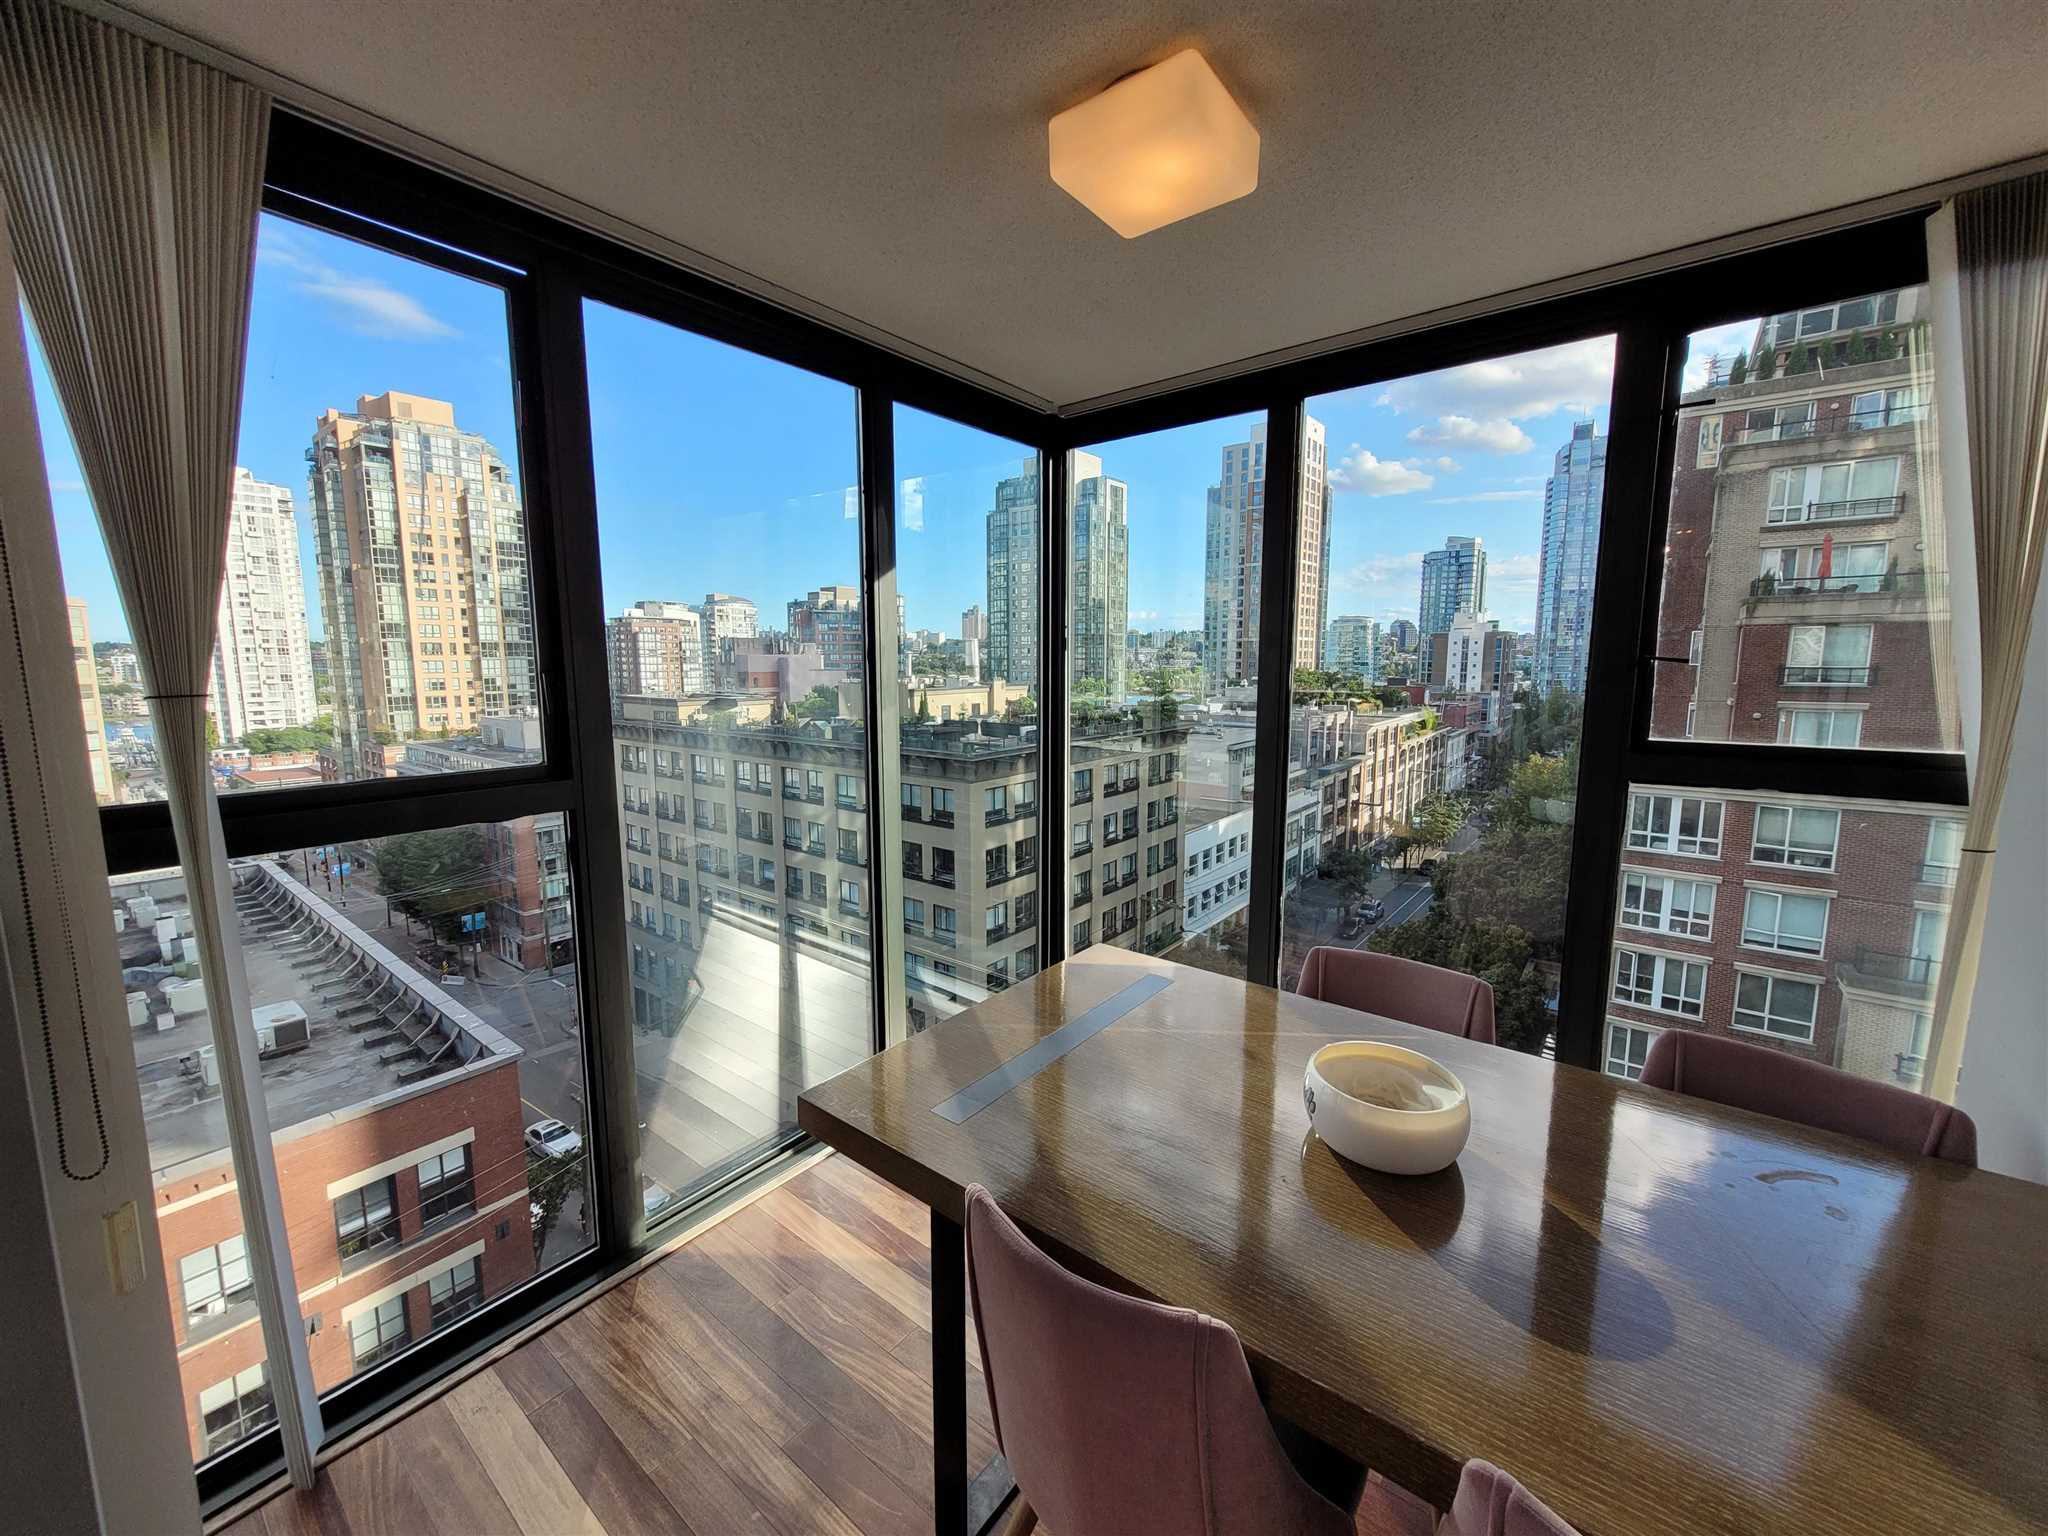 901 1155 HOMER STREET - Yaletown Apartment/Condo for sale, 2 Bedrooms (R2605495) - #1